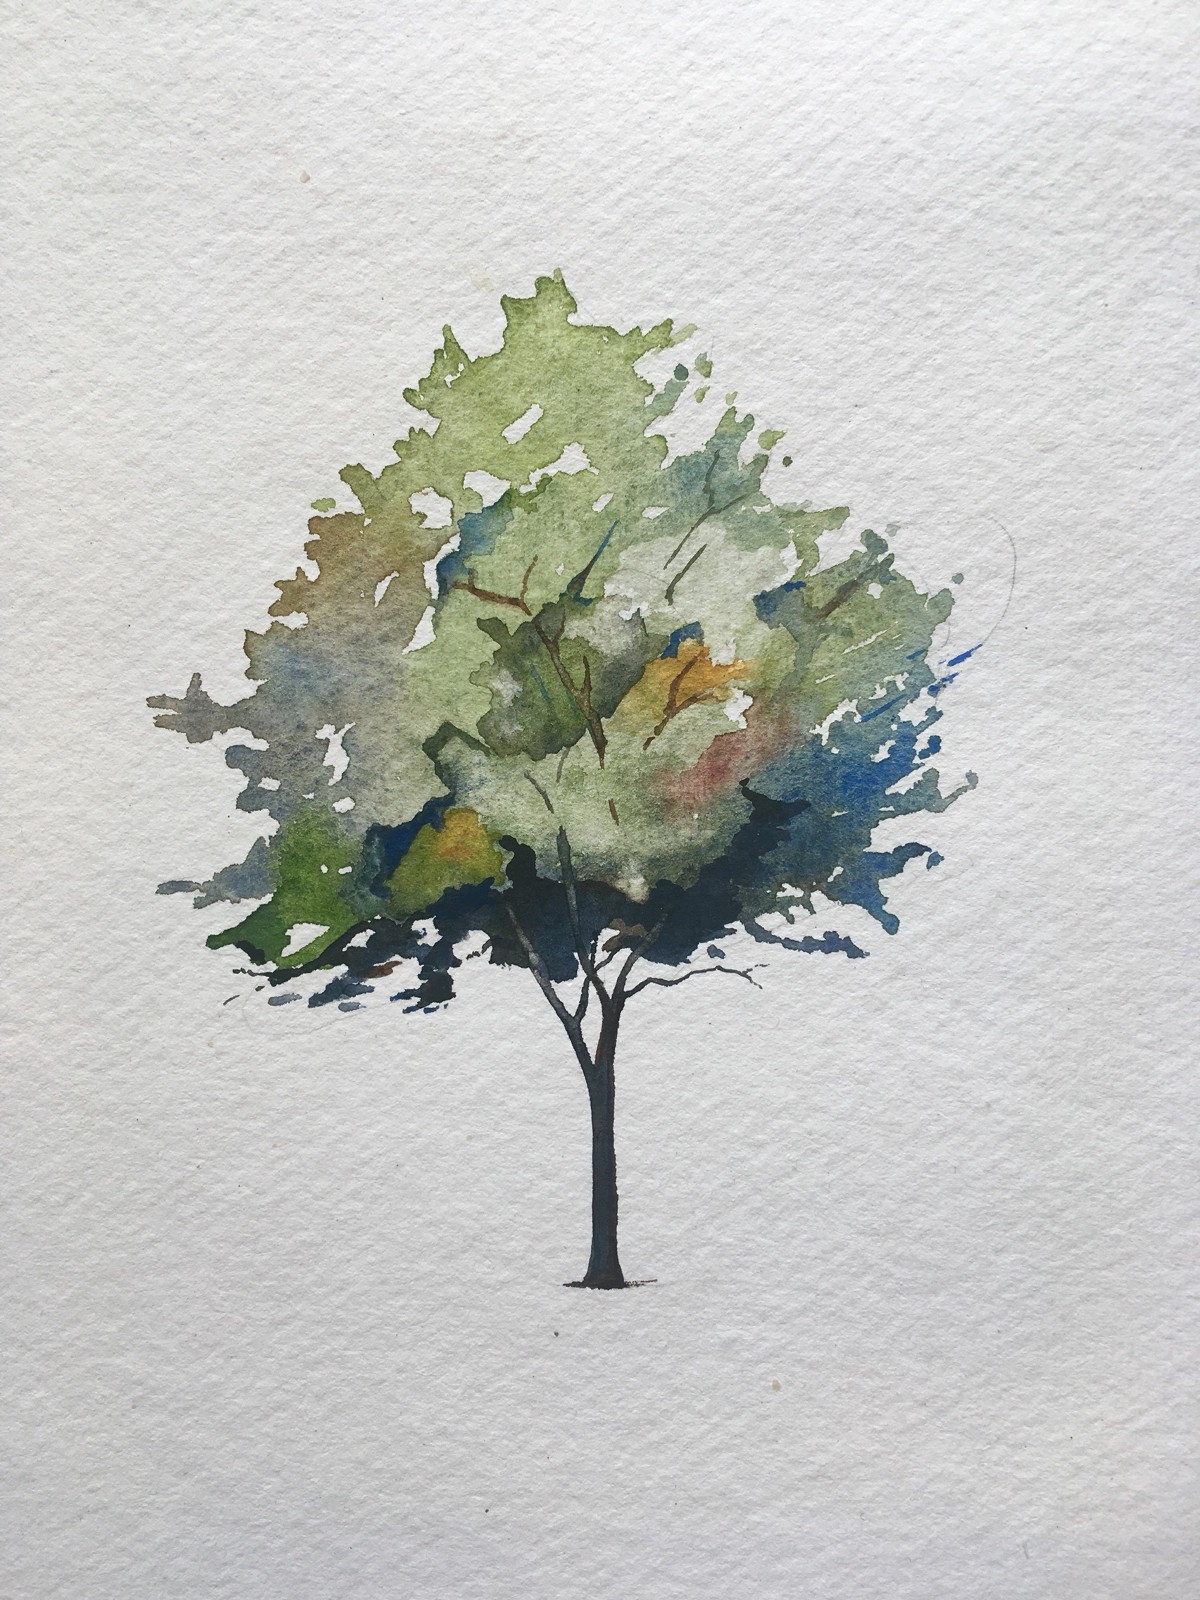 How To Paint A Tree In Watercolors